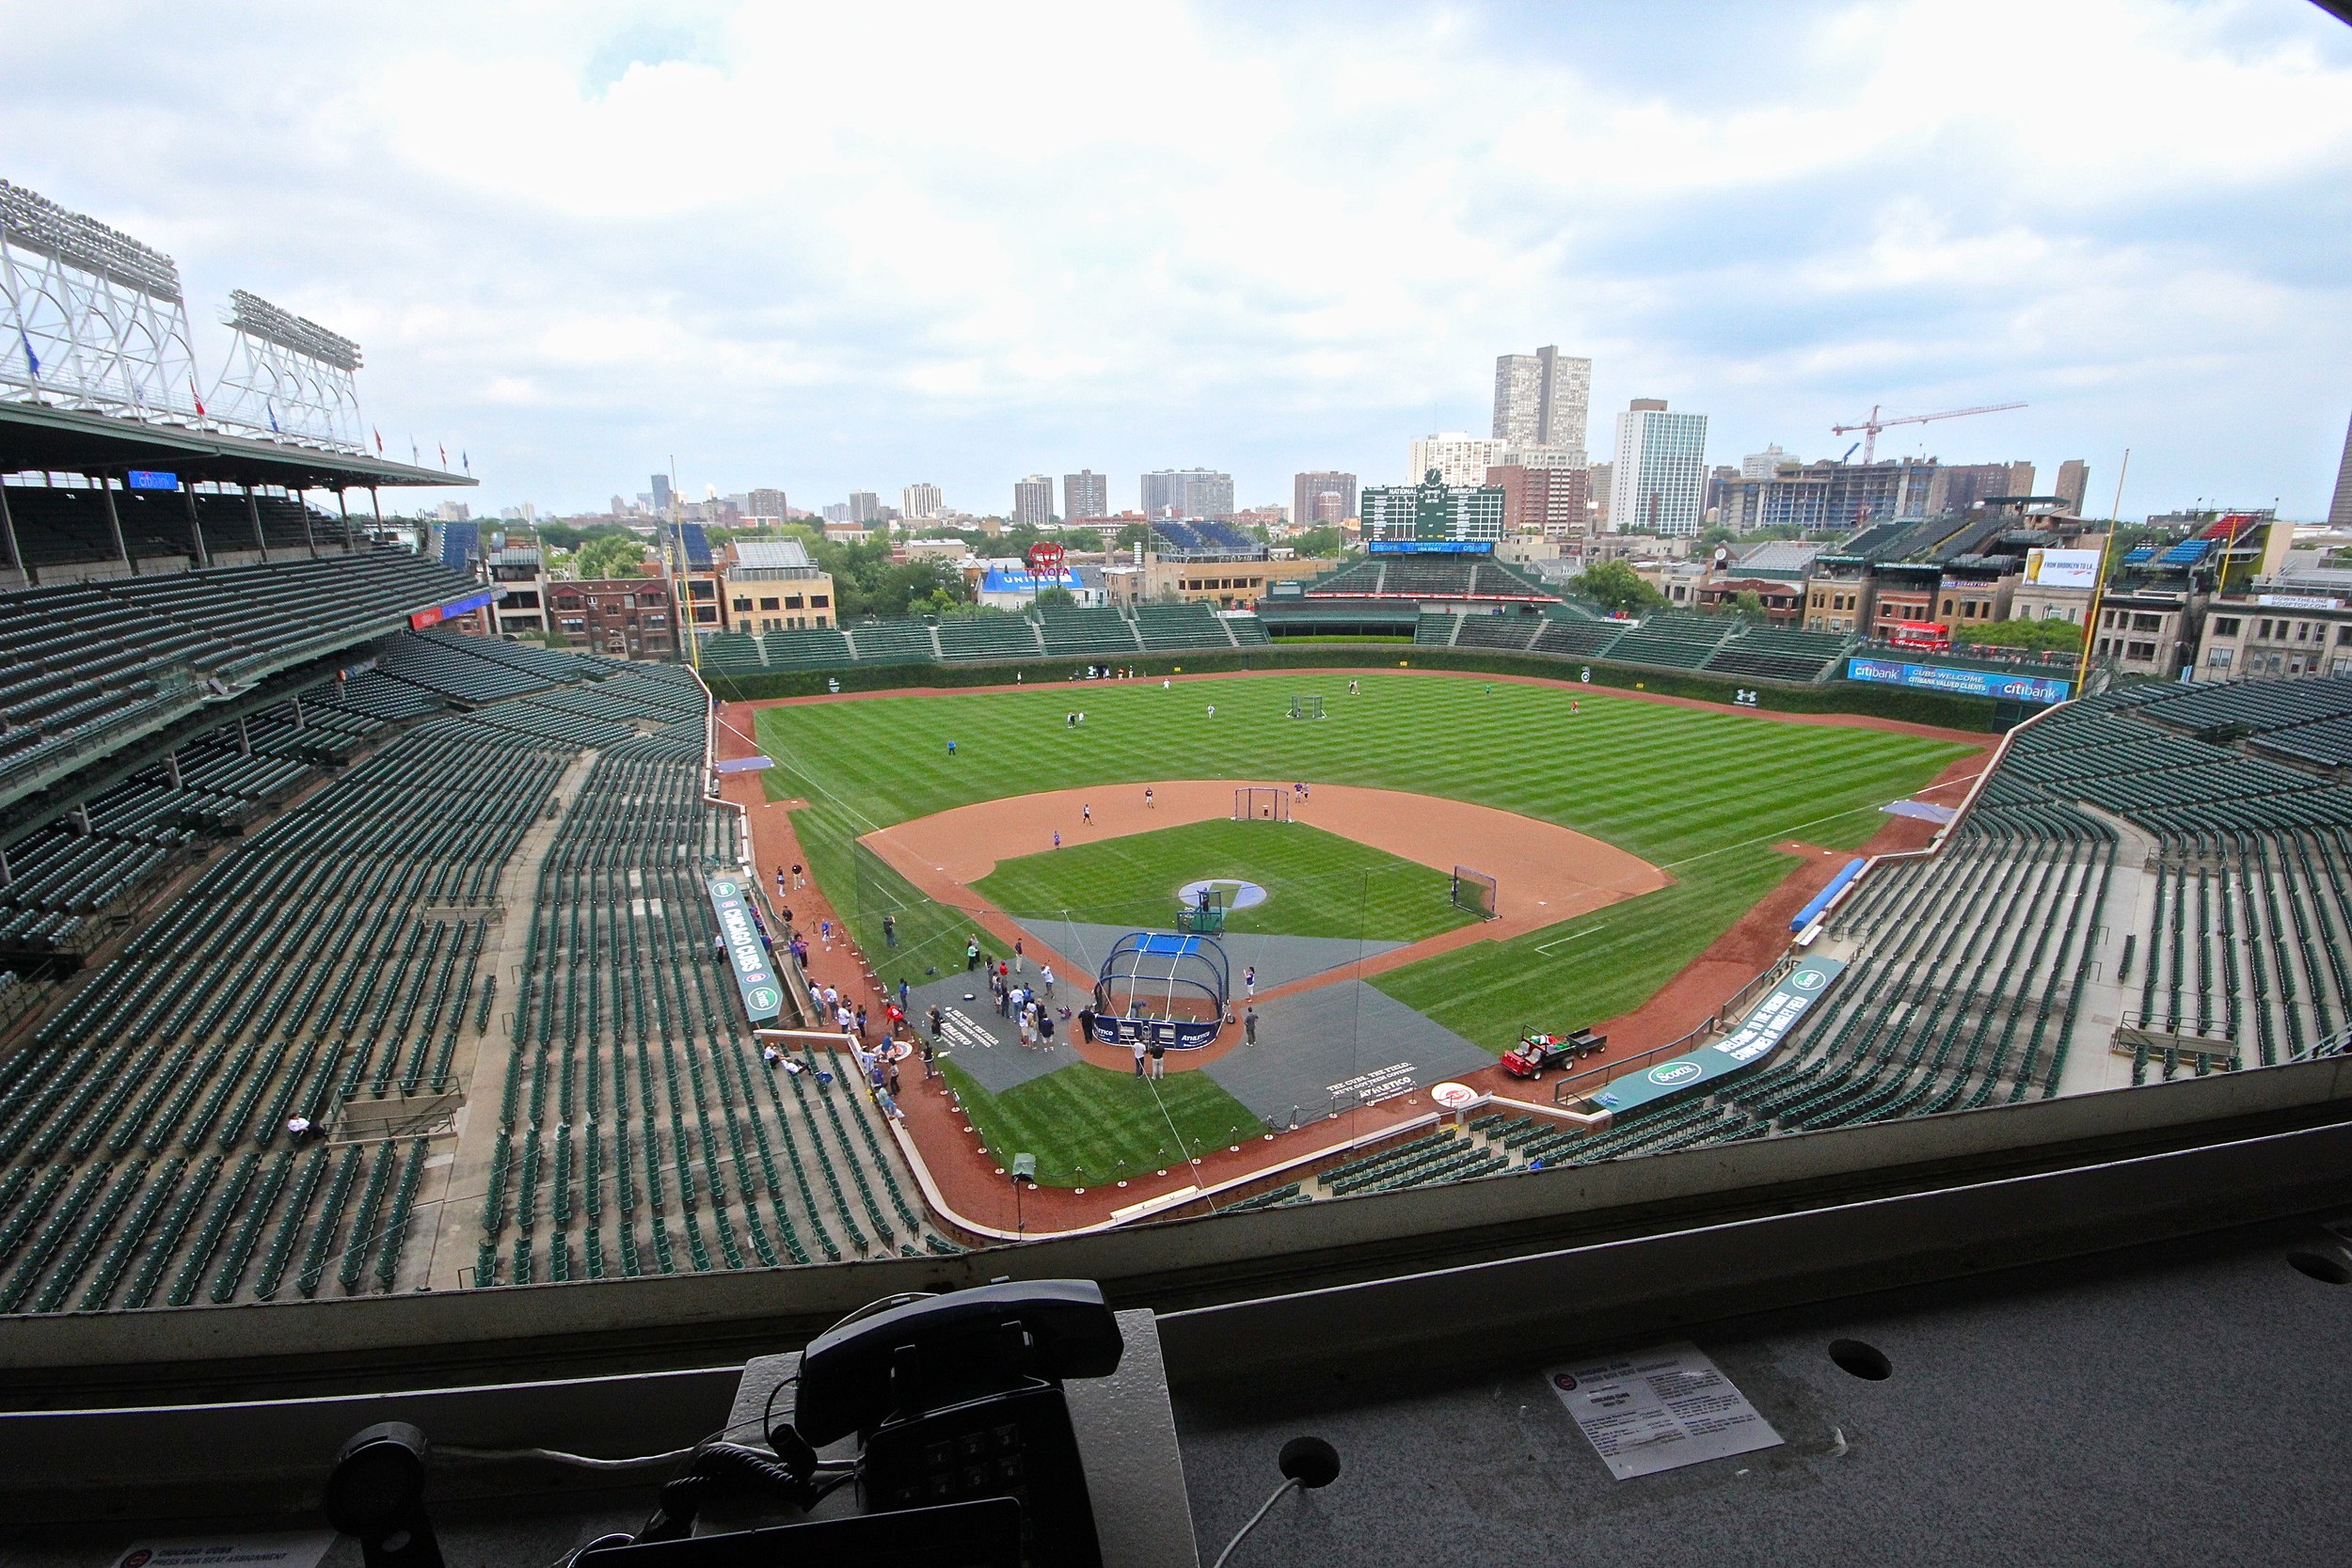 Wrigley view from the press box